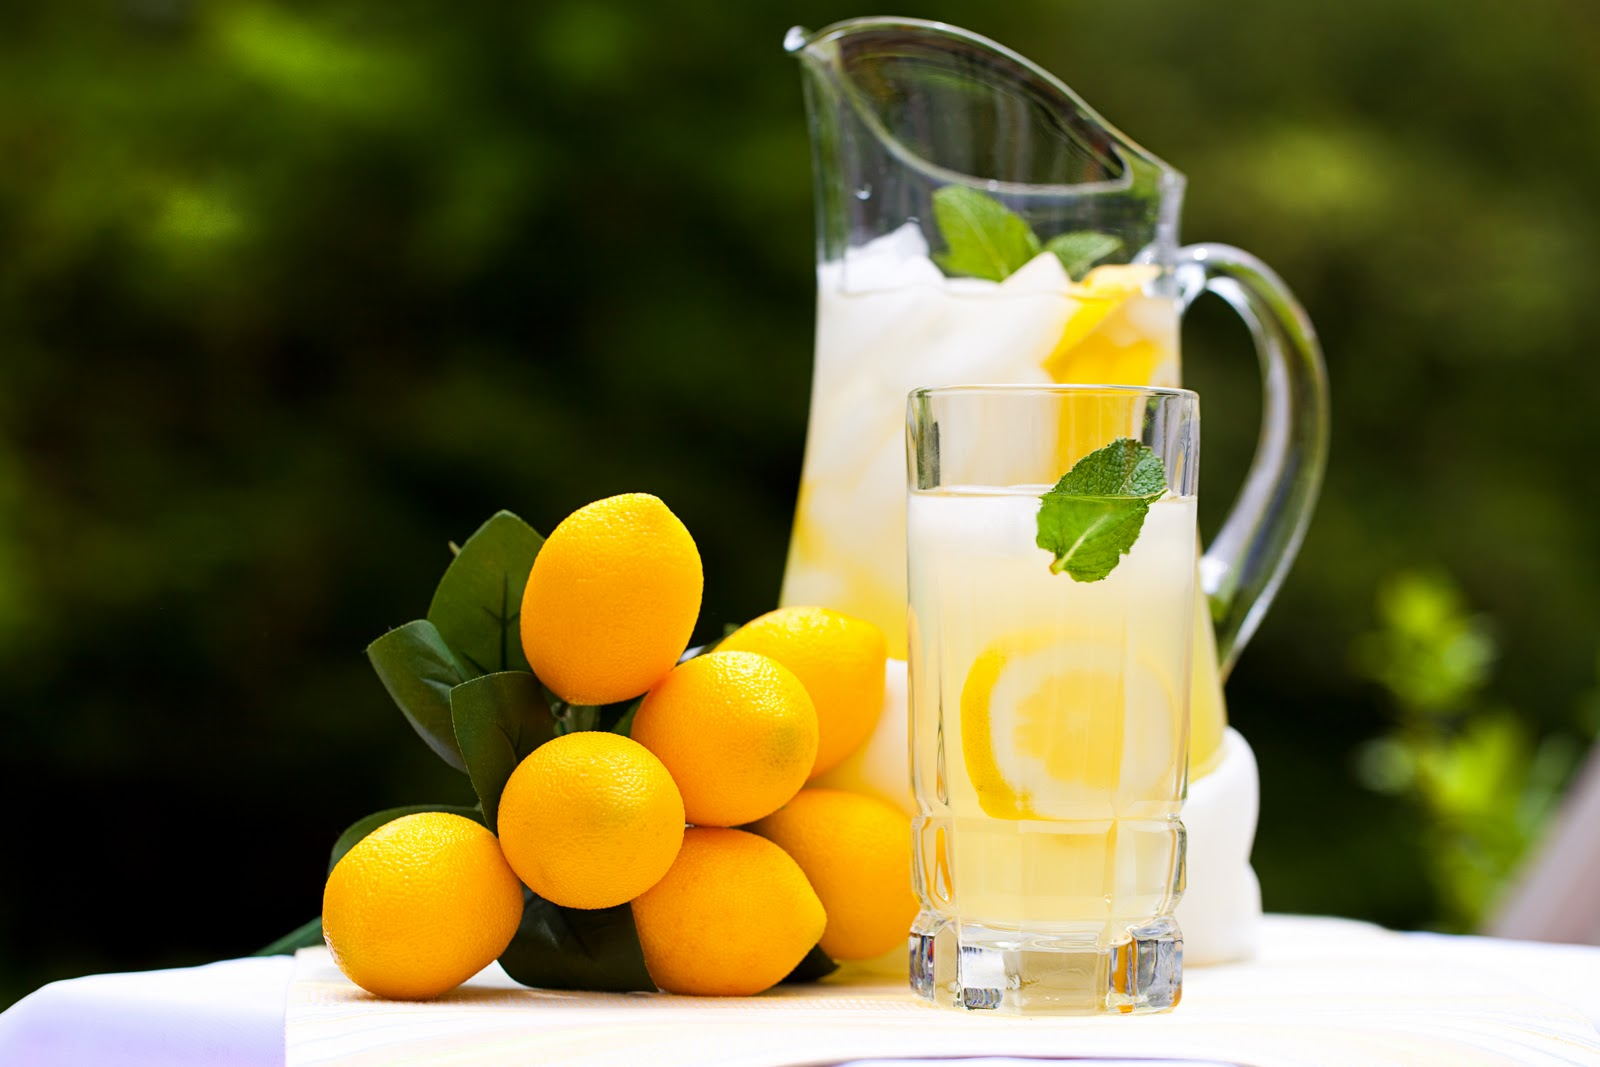 Refreshing LemonadeImages Of Lemonade